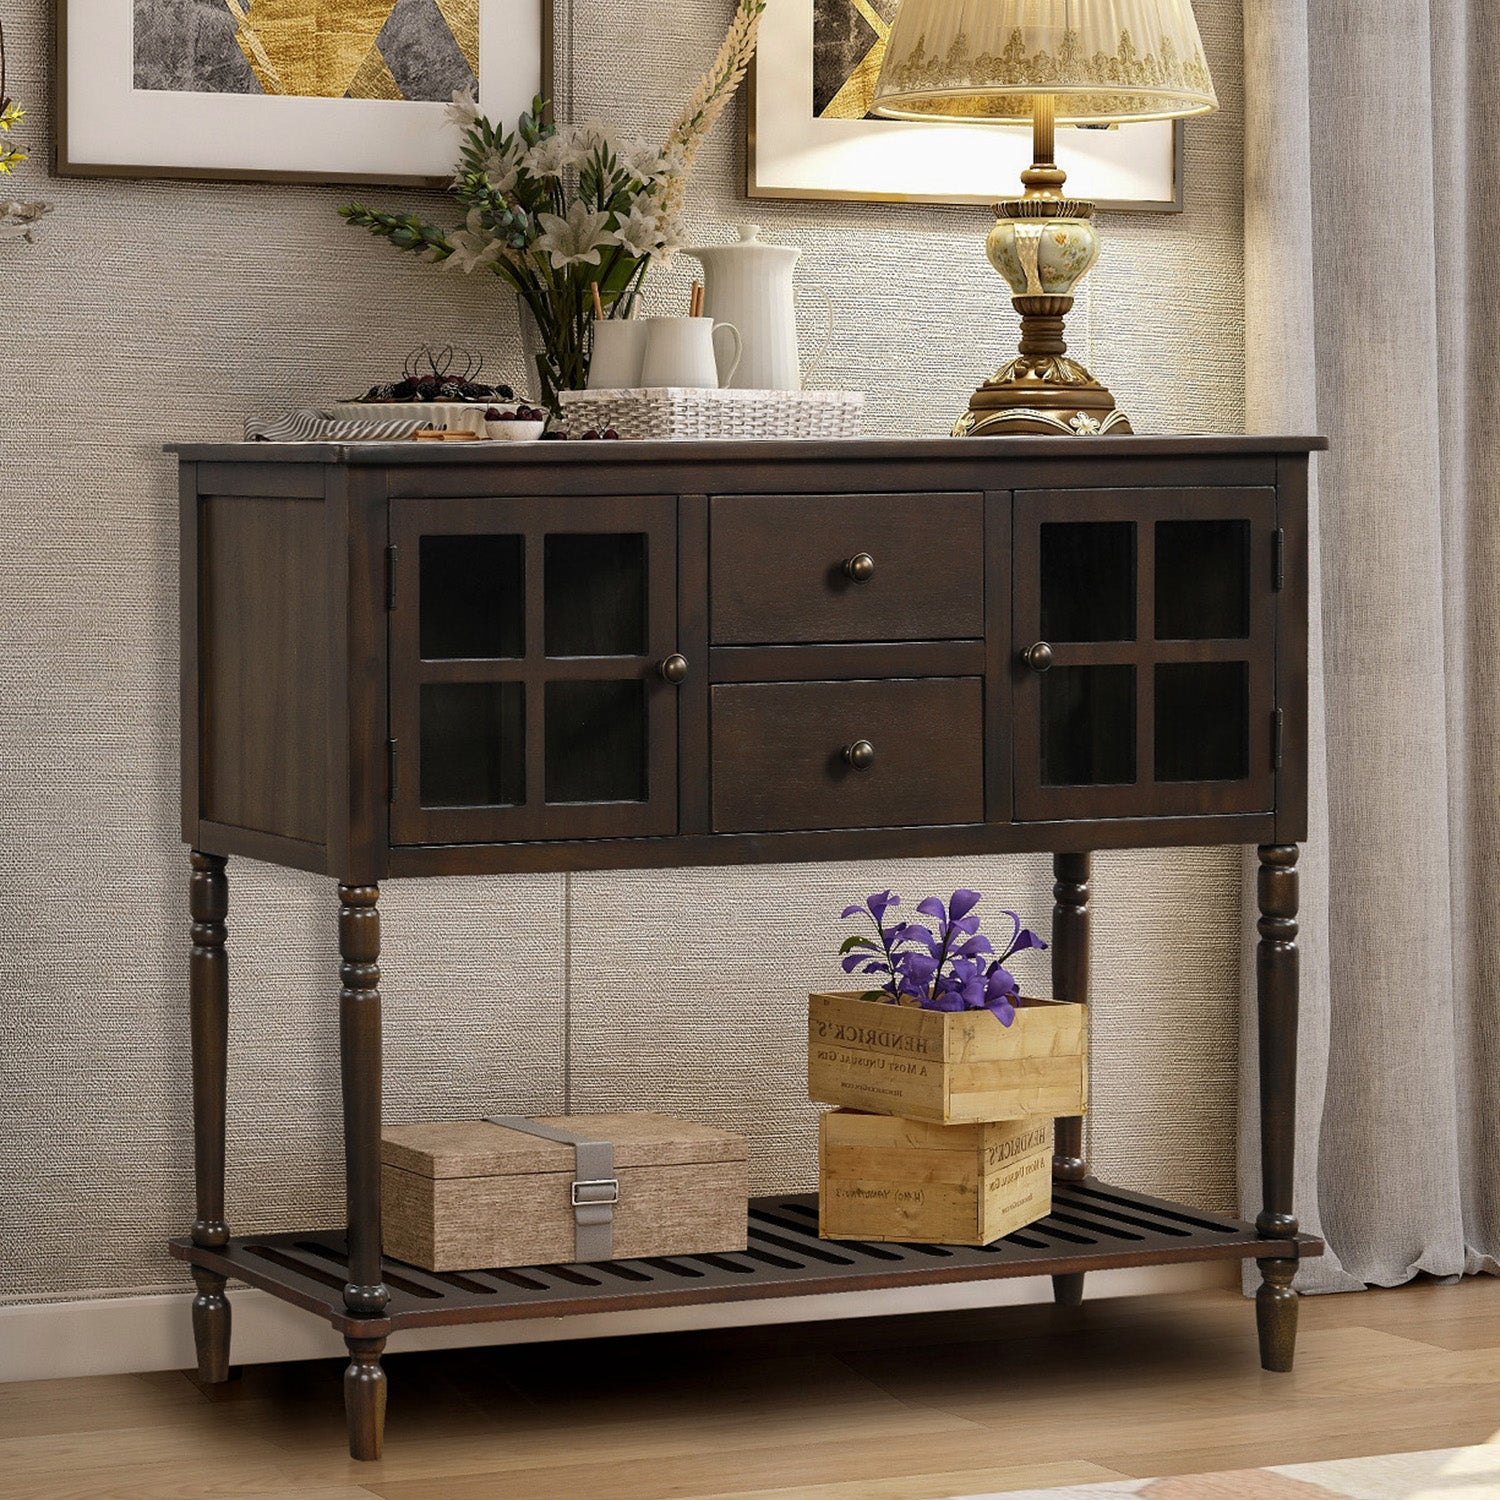 Sideboard Console Table with Bottom Shelf, Farmhouse Wood/Glass Buffet Storage Cabinet Living Room BH193444